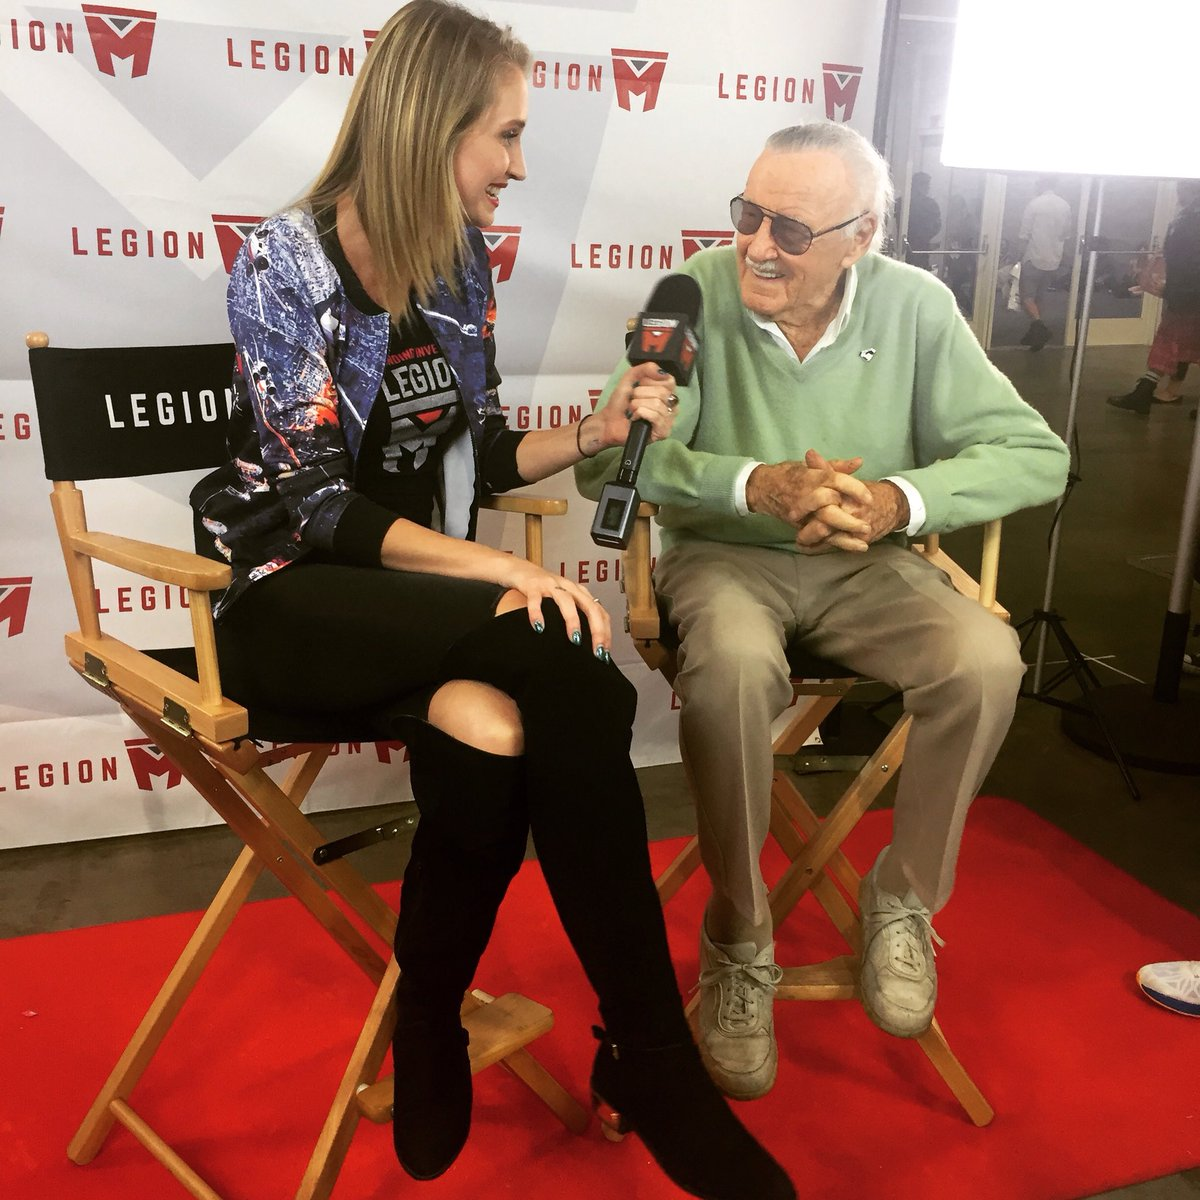 Stan Lee was every geek's grandad. He achieved so much, was so generous with this time and presence and lived a long, impressive life. #excelsior